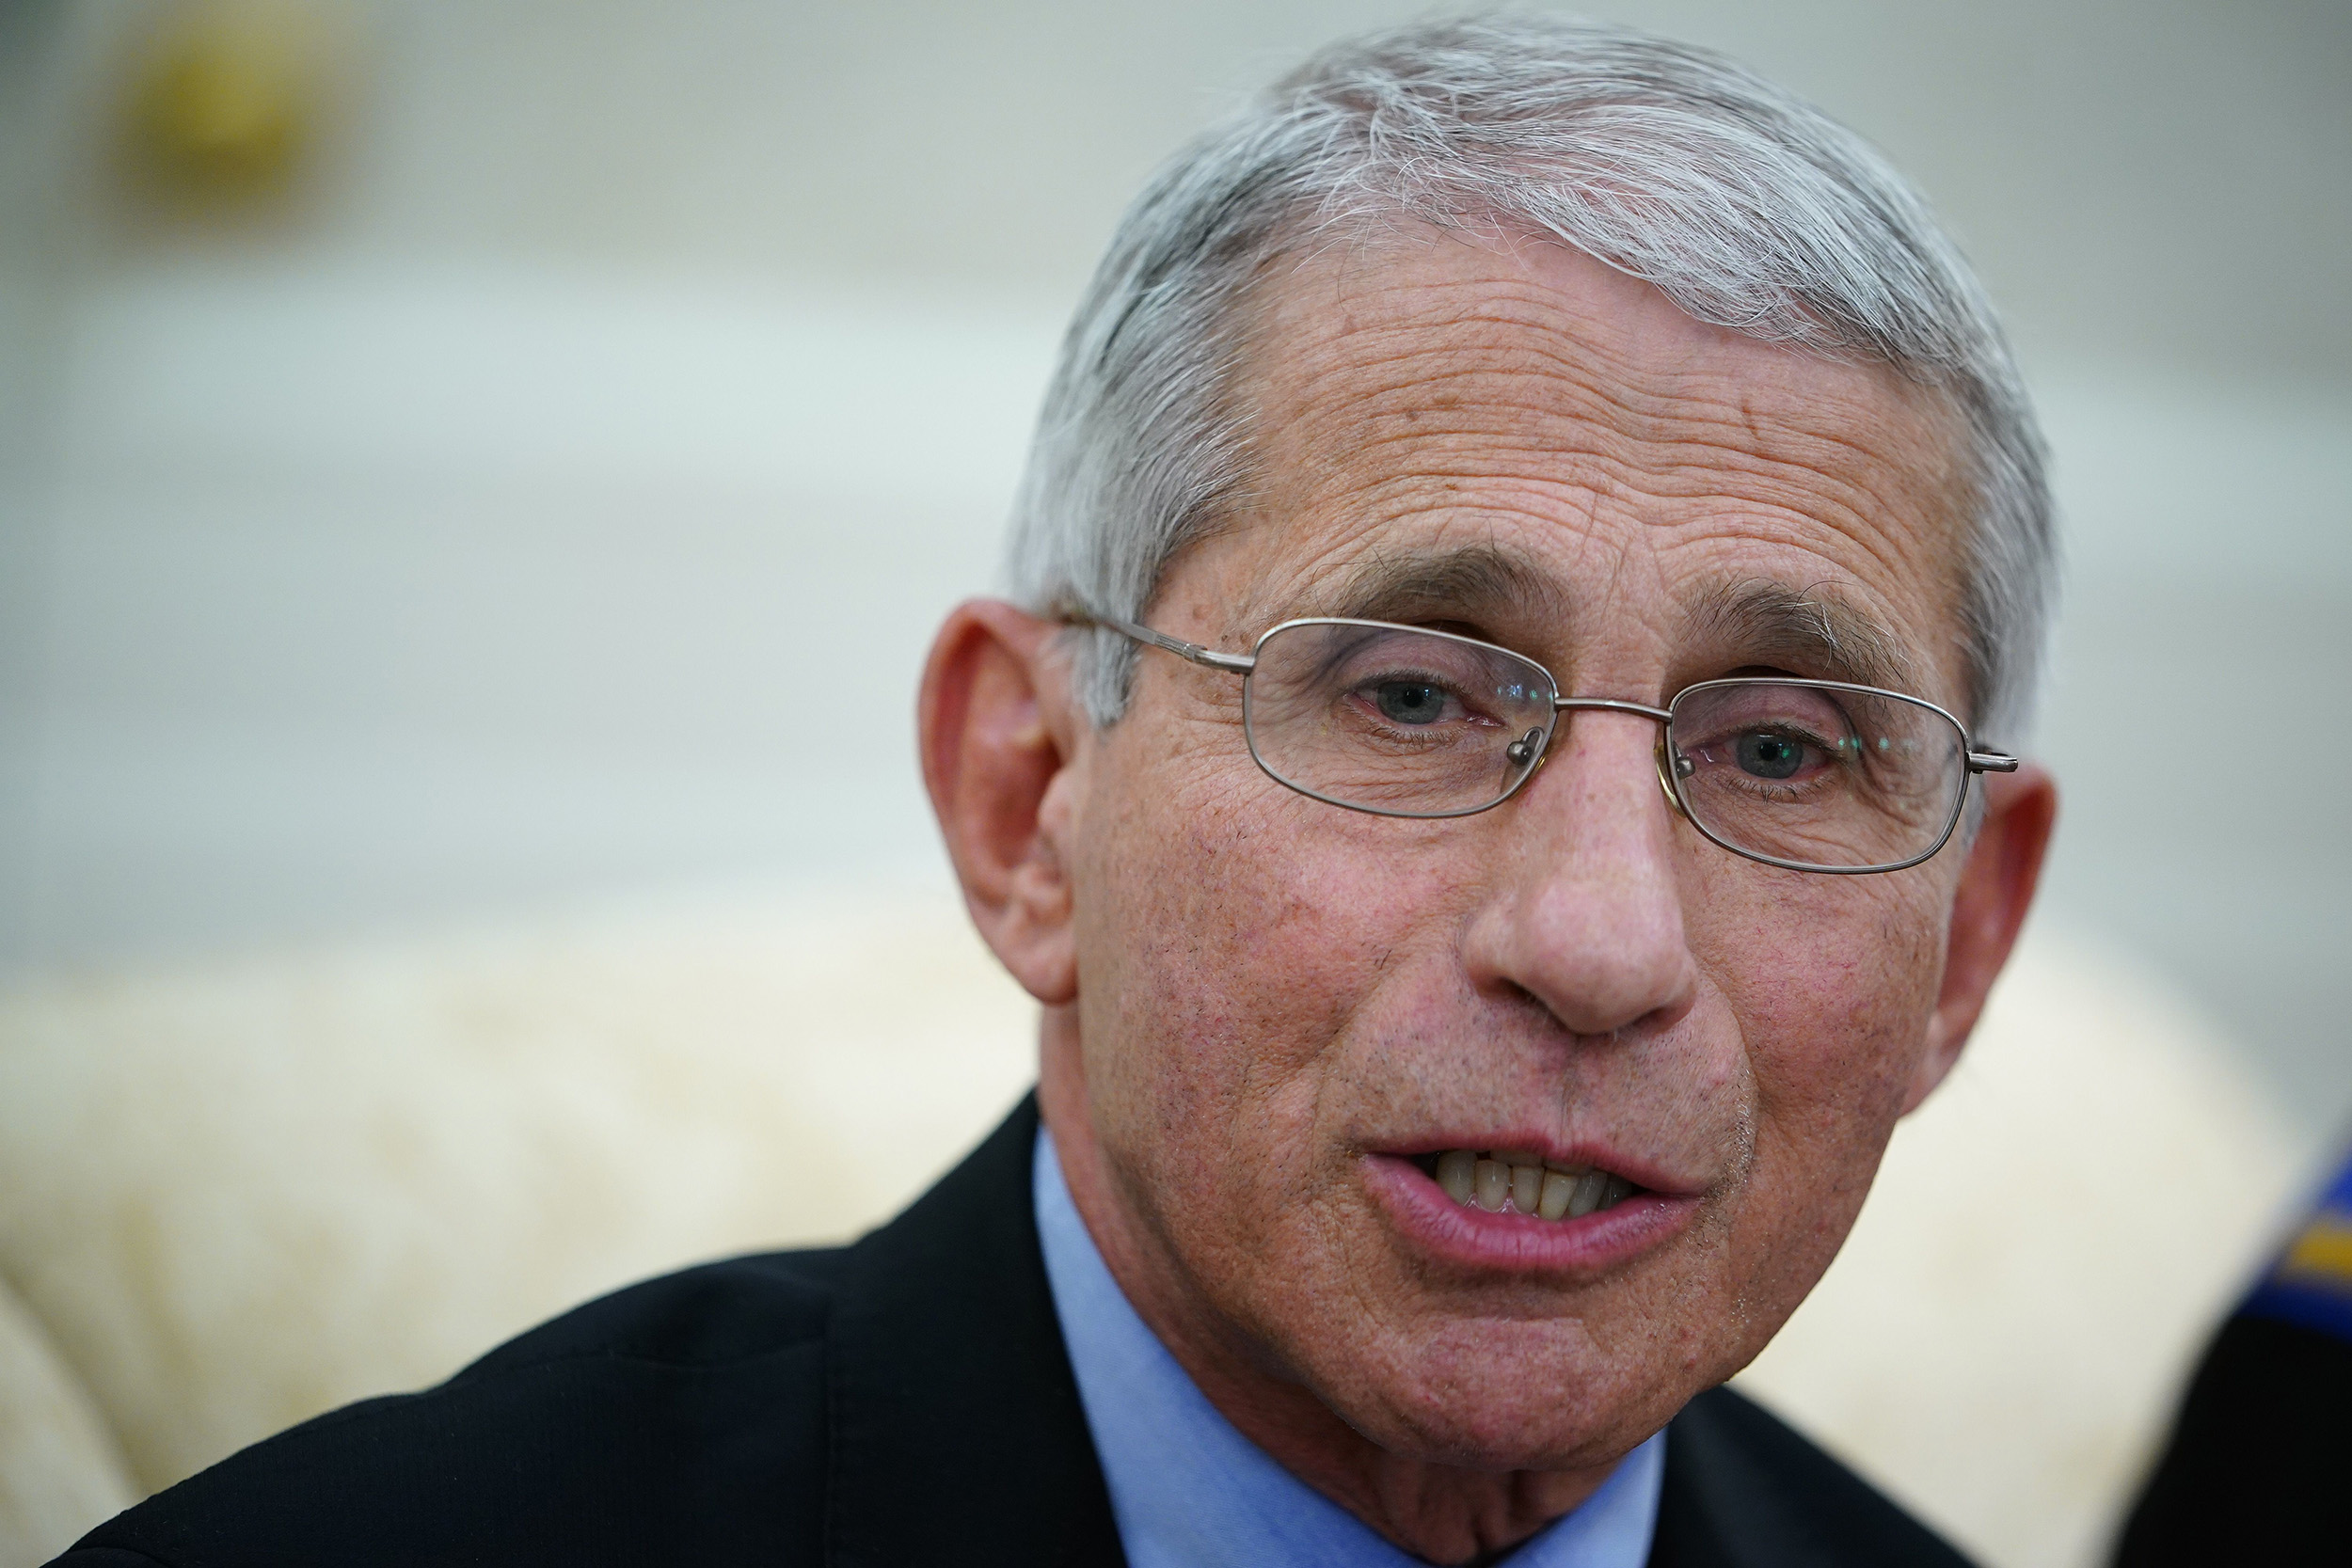 Dr. Anthony Fauci, Director of the National Institute of Allergy and Infectious Diseases speaks during a meeting in the Oval Office of the White House in Washington, DC on April 29.